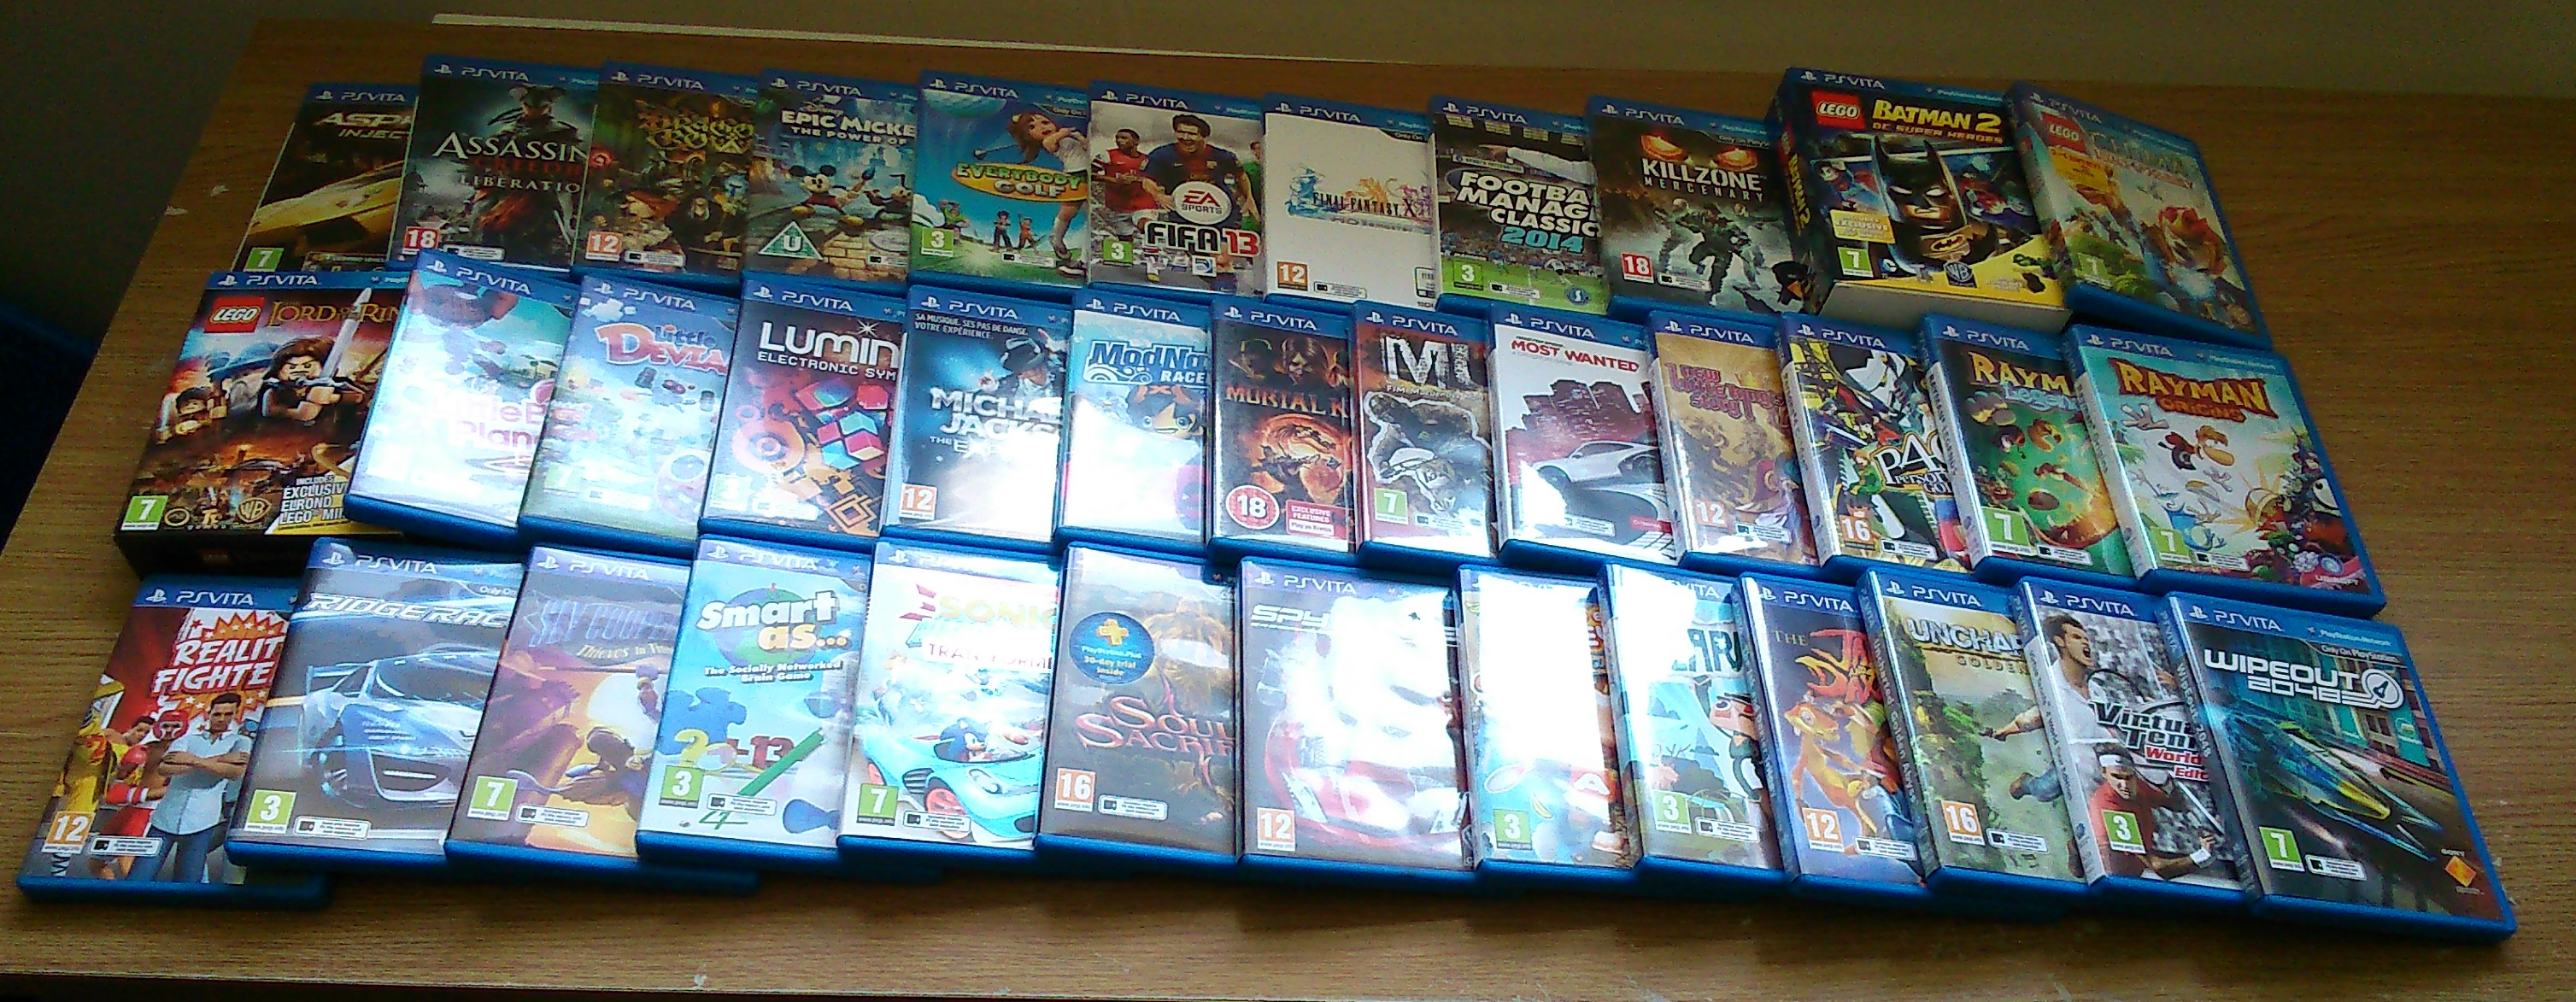 current ps vita collection - vita player - the one-stop resource for